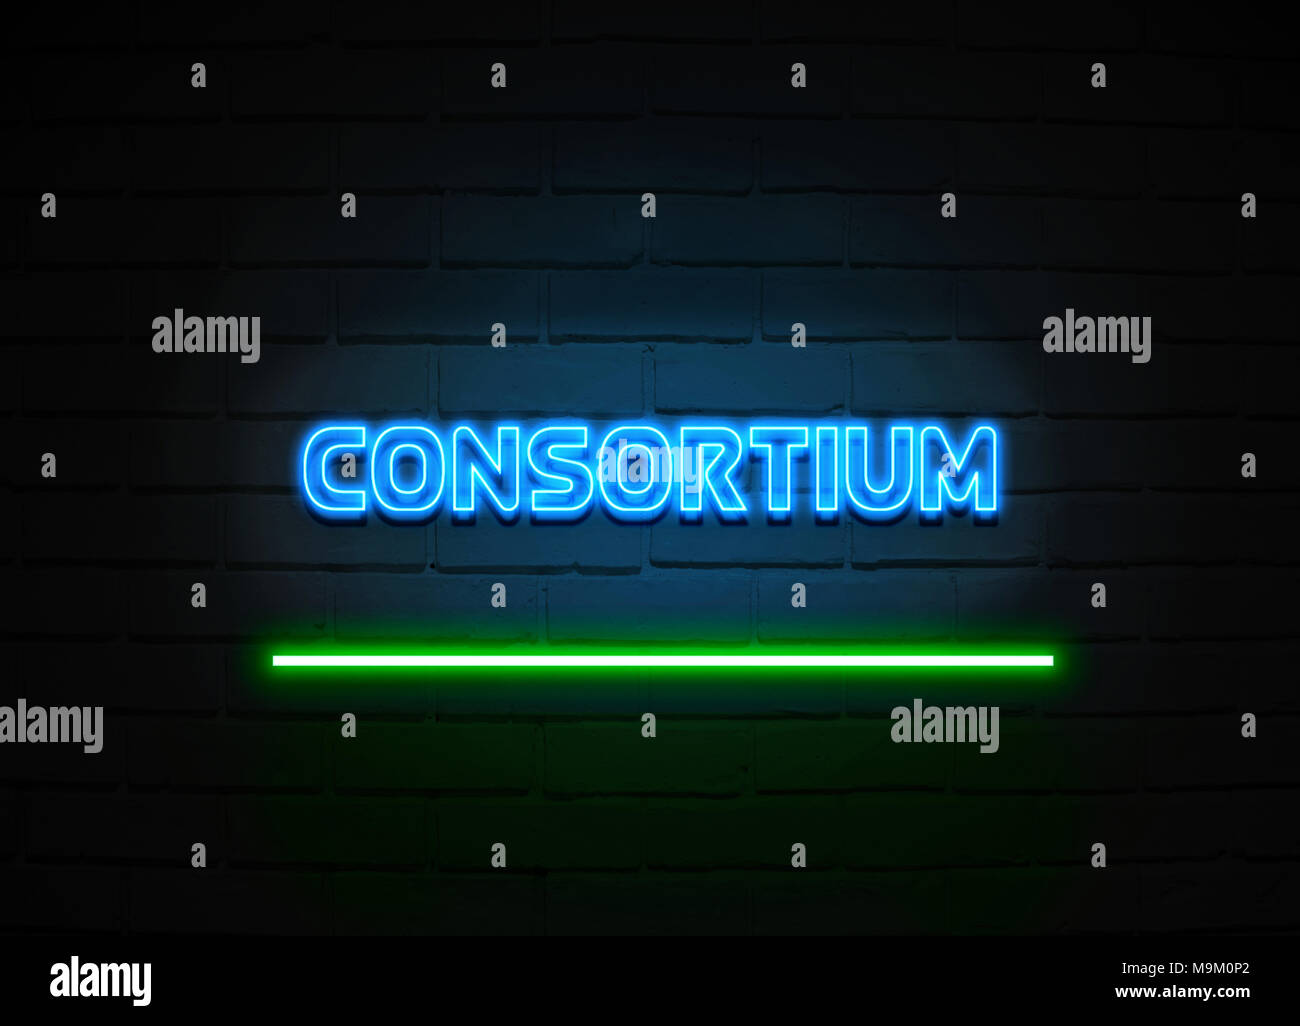 Consortium neon sign - Glowing Neon Sign on brickwall wall - 3D rendered royalty free stock illustration. - Stock Image